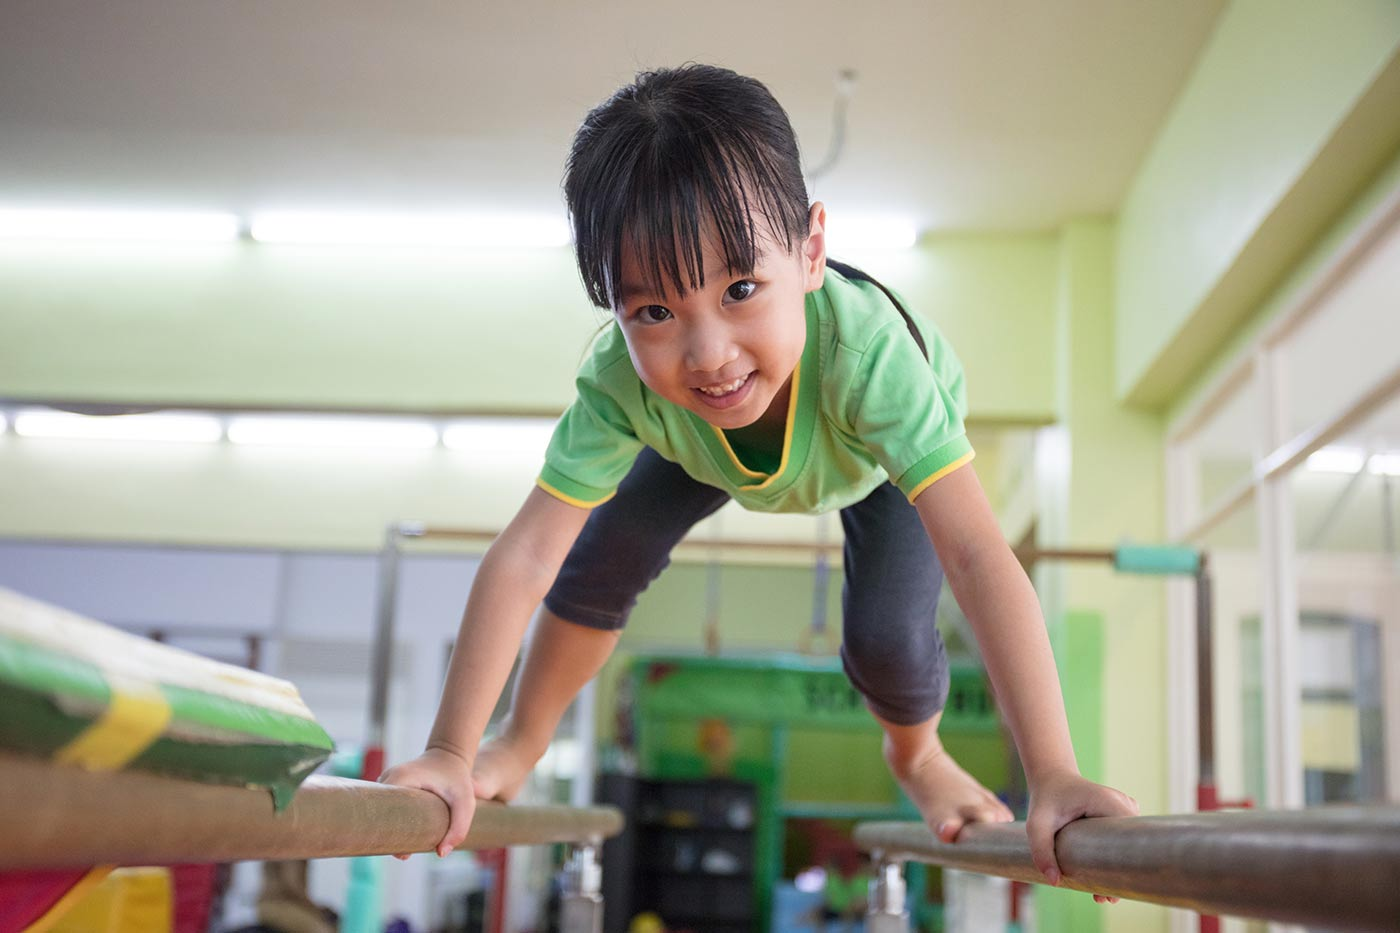 characteristics of a resilient child